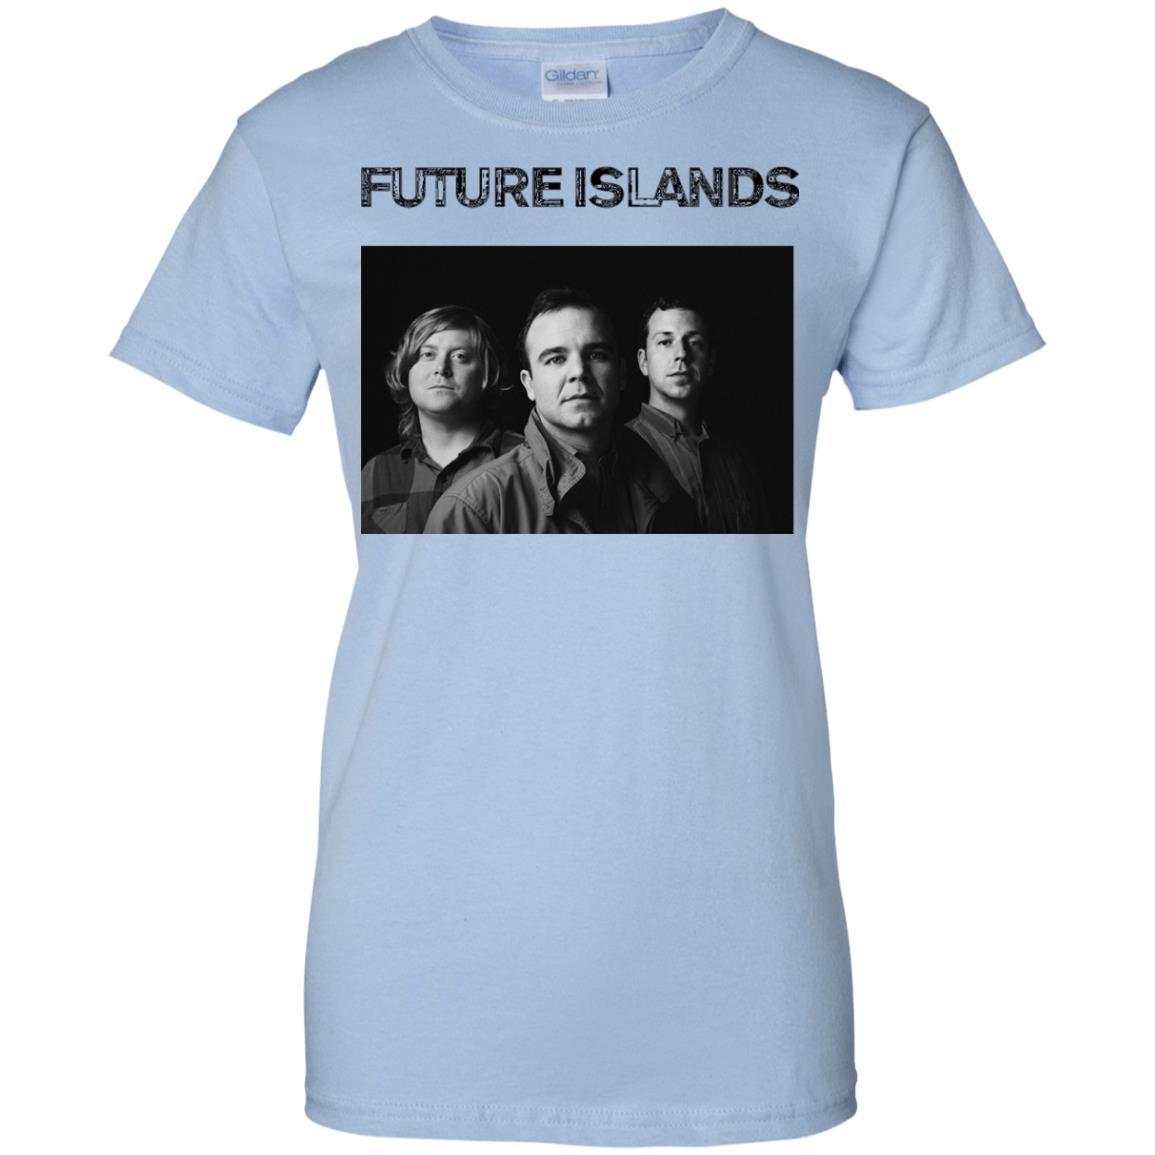 Future Islands Band T-Shirt